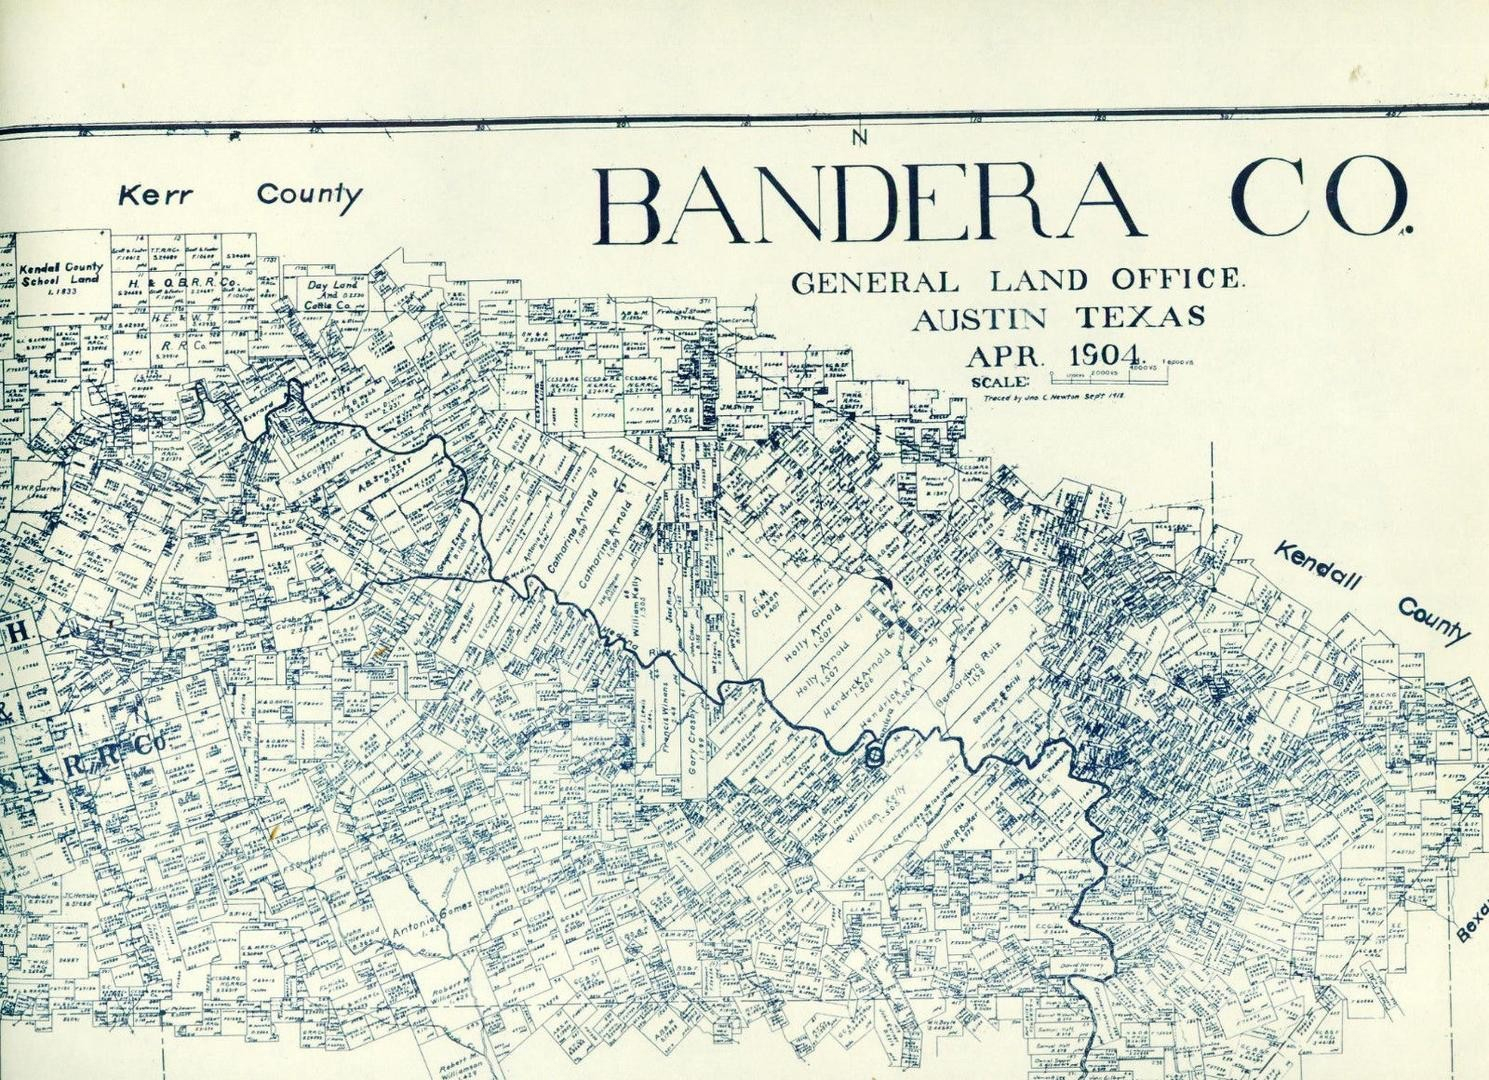 Old Bandera County Texas General Land Office Owner Map Medina Pipe - Texas General Land Office Maps